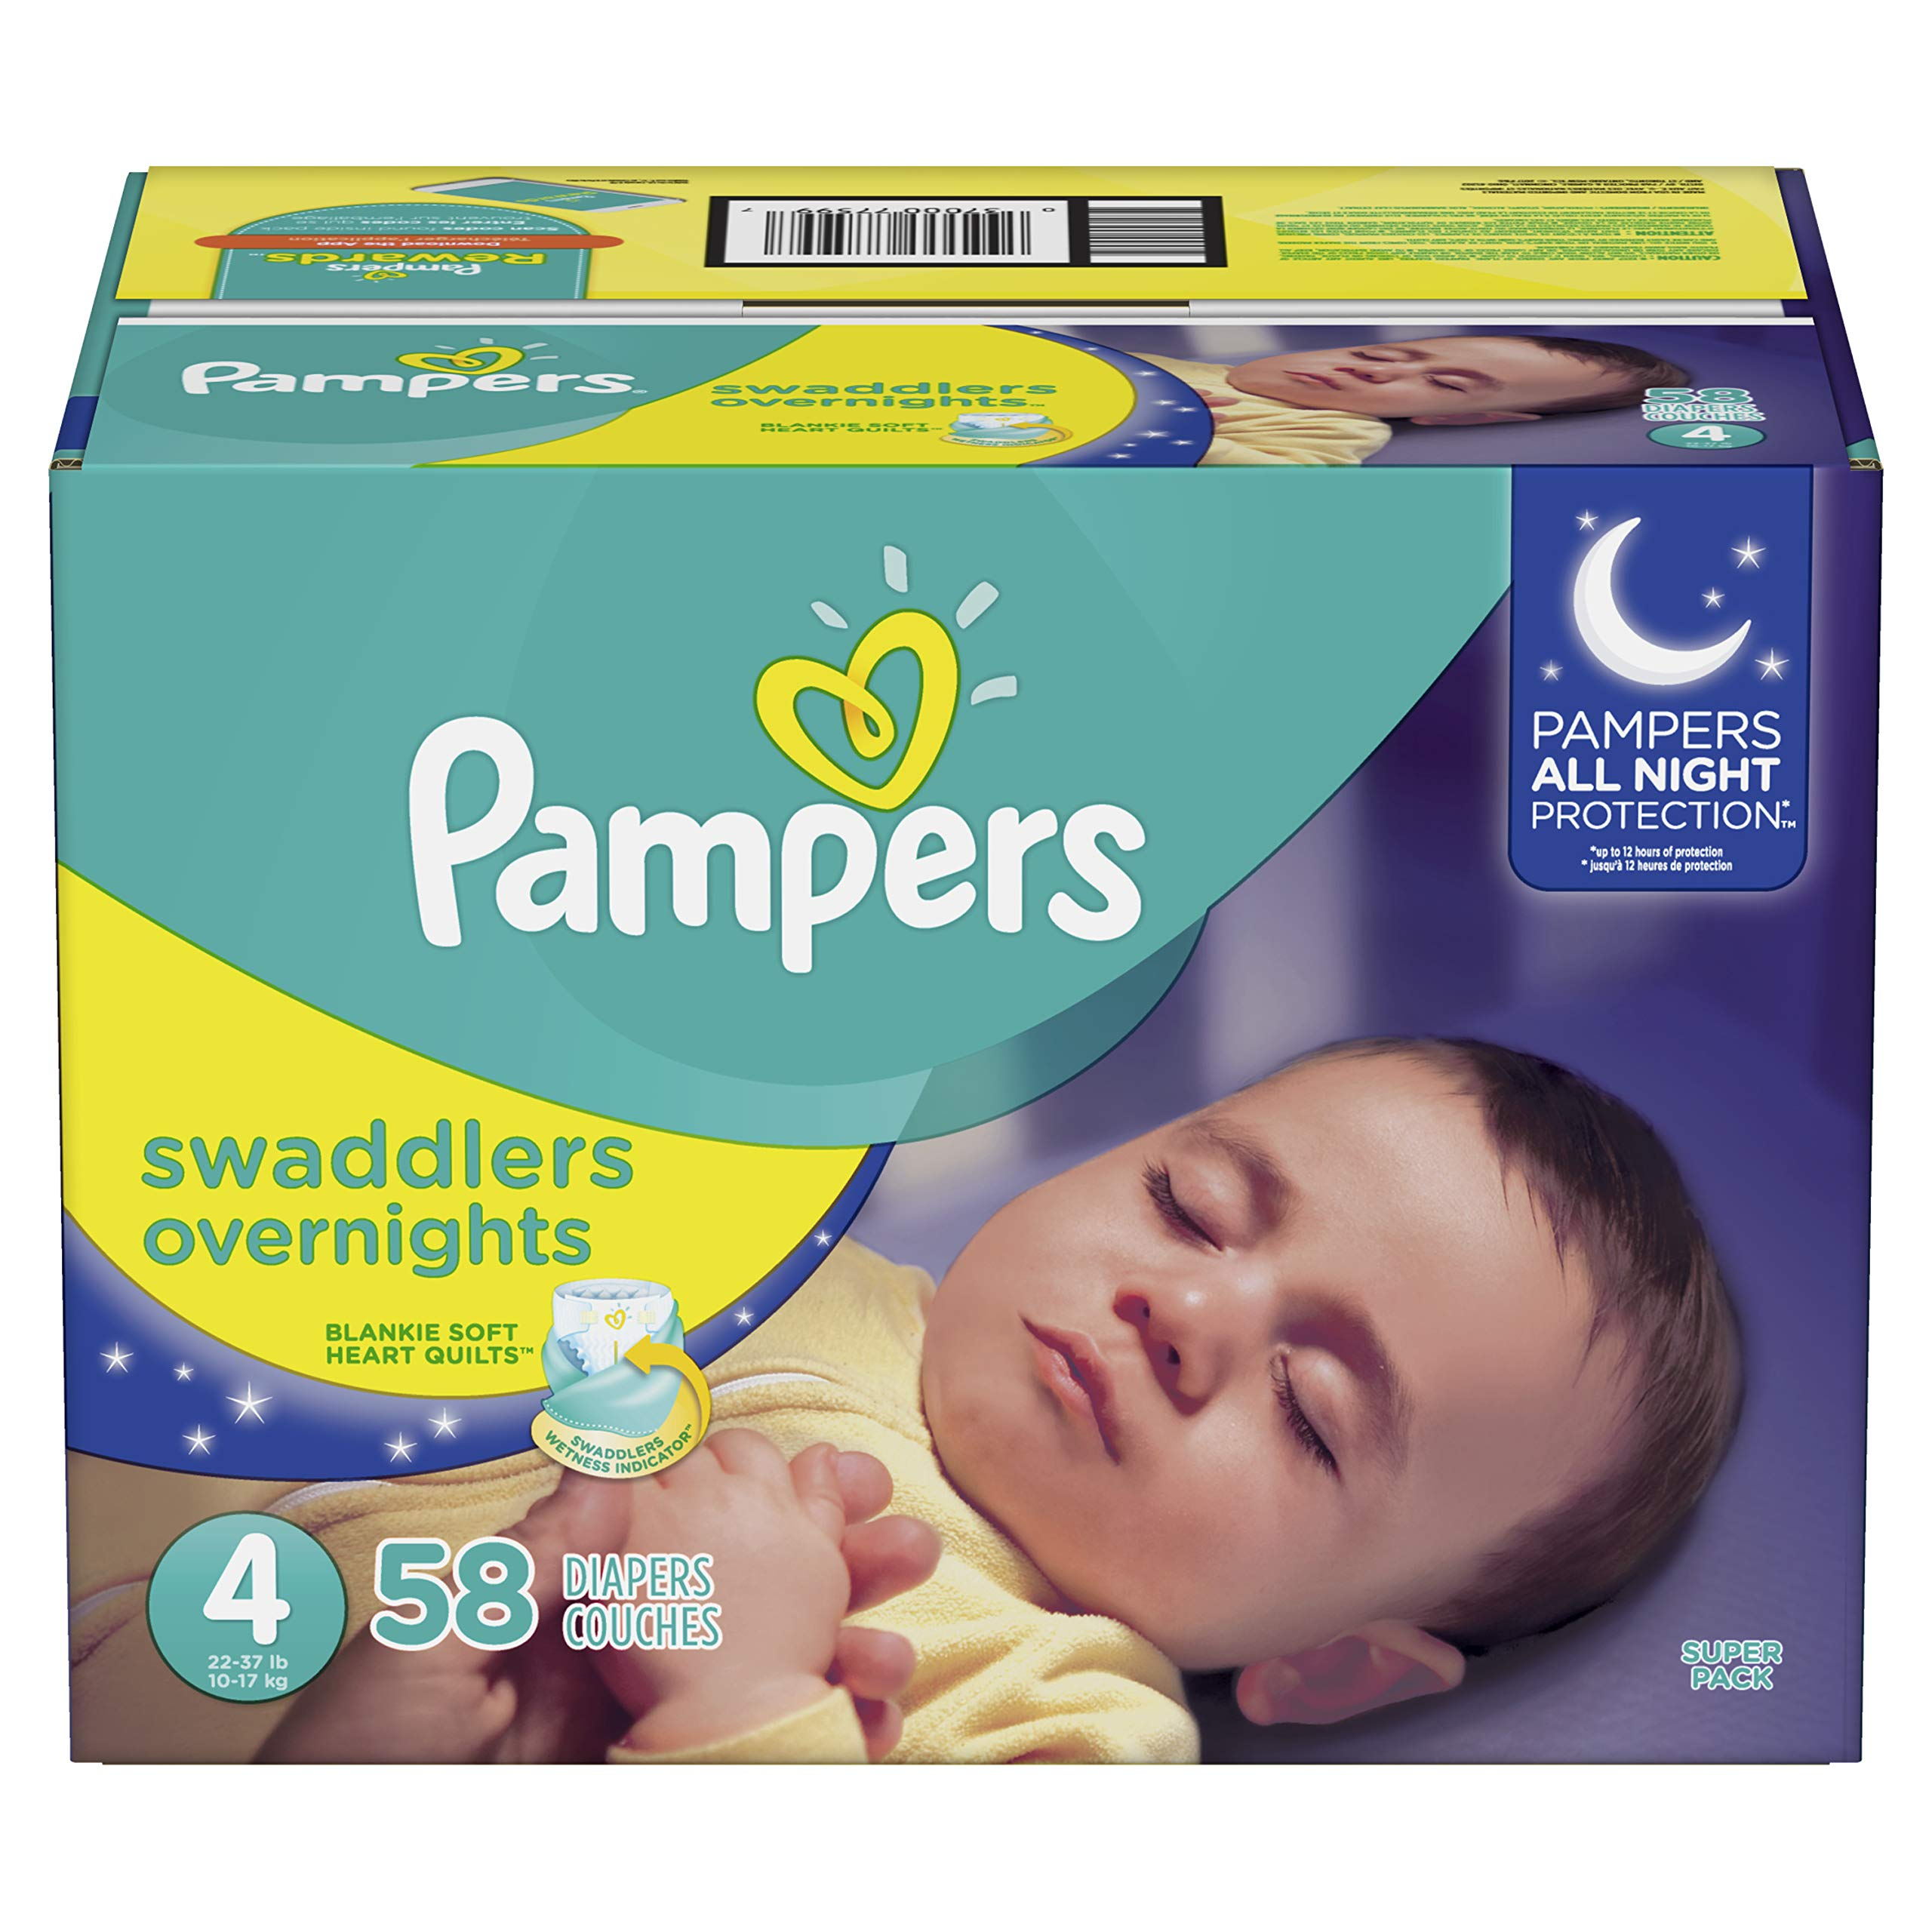 Pampers Swaddlers Overnights Disposable Baby Diapers Size 4, 58 Count, SUPER